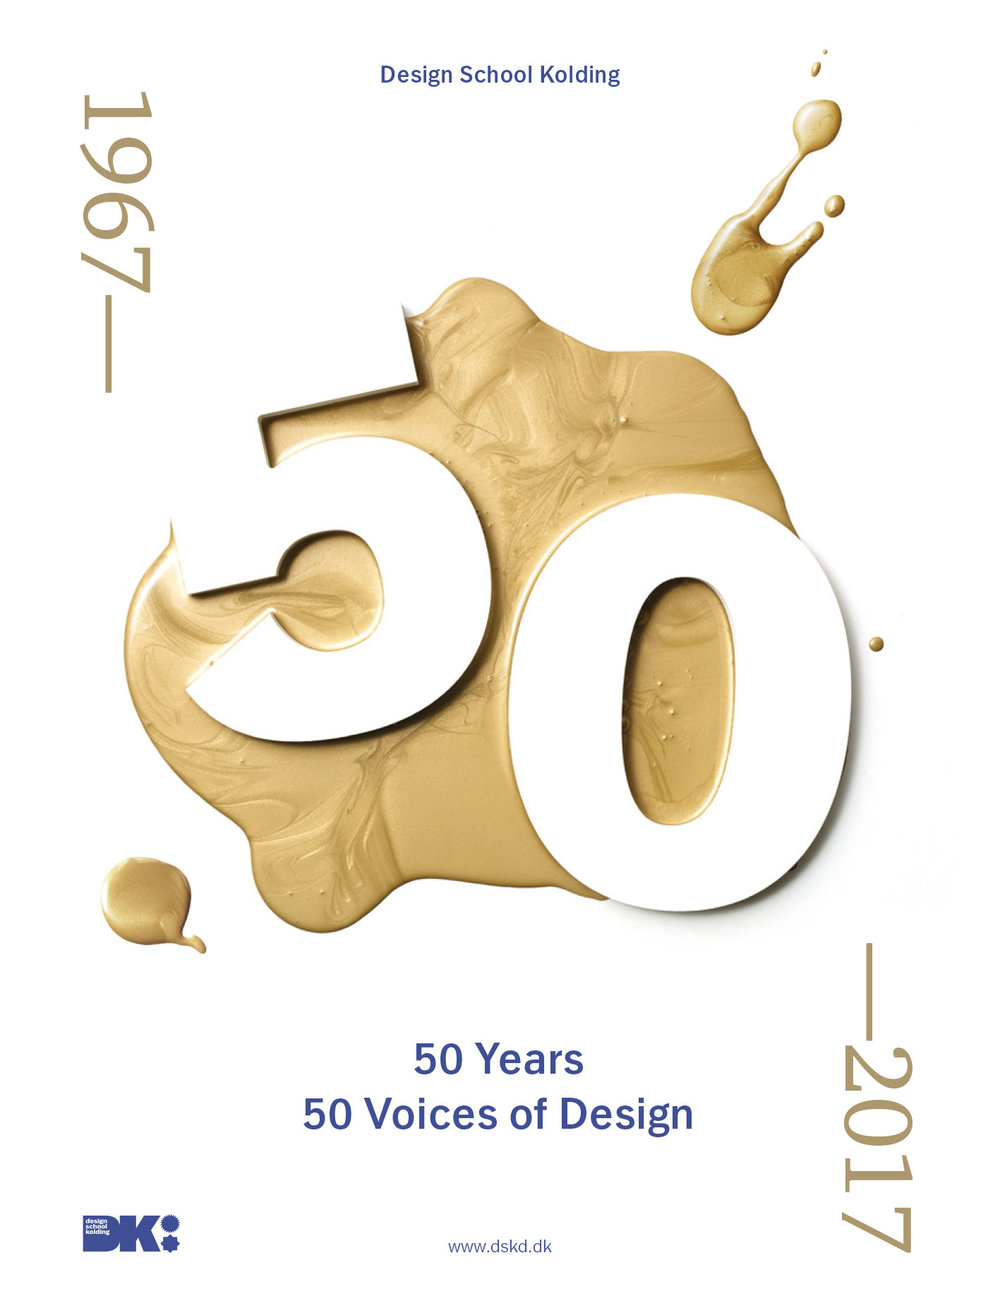 CLICK ON THE PICTURE TO READ THE FULL PUBLICATION .  50 designers – educated at Design School Kolding over a period of 50 years. AUTHOR Design School Kolding YEAR OF PUBLICATION - 2017